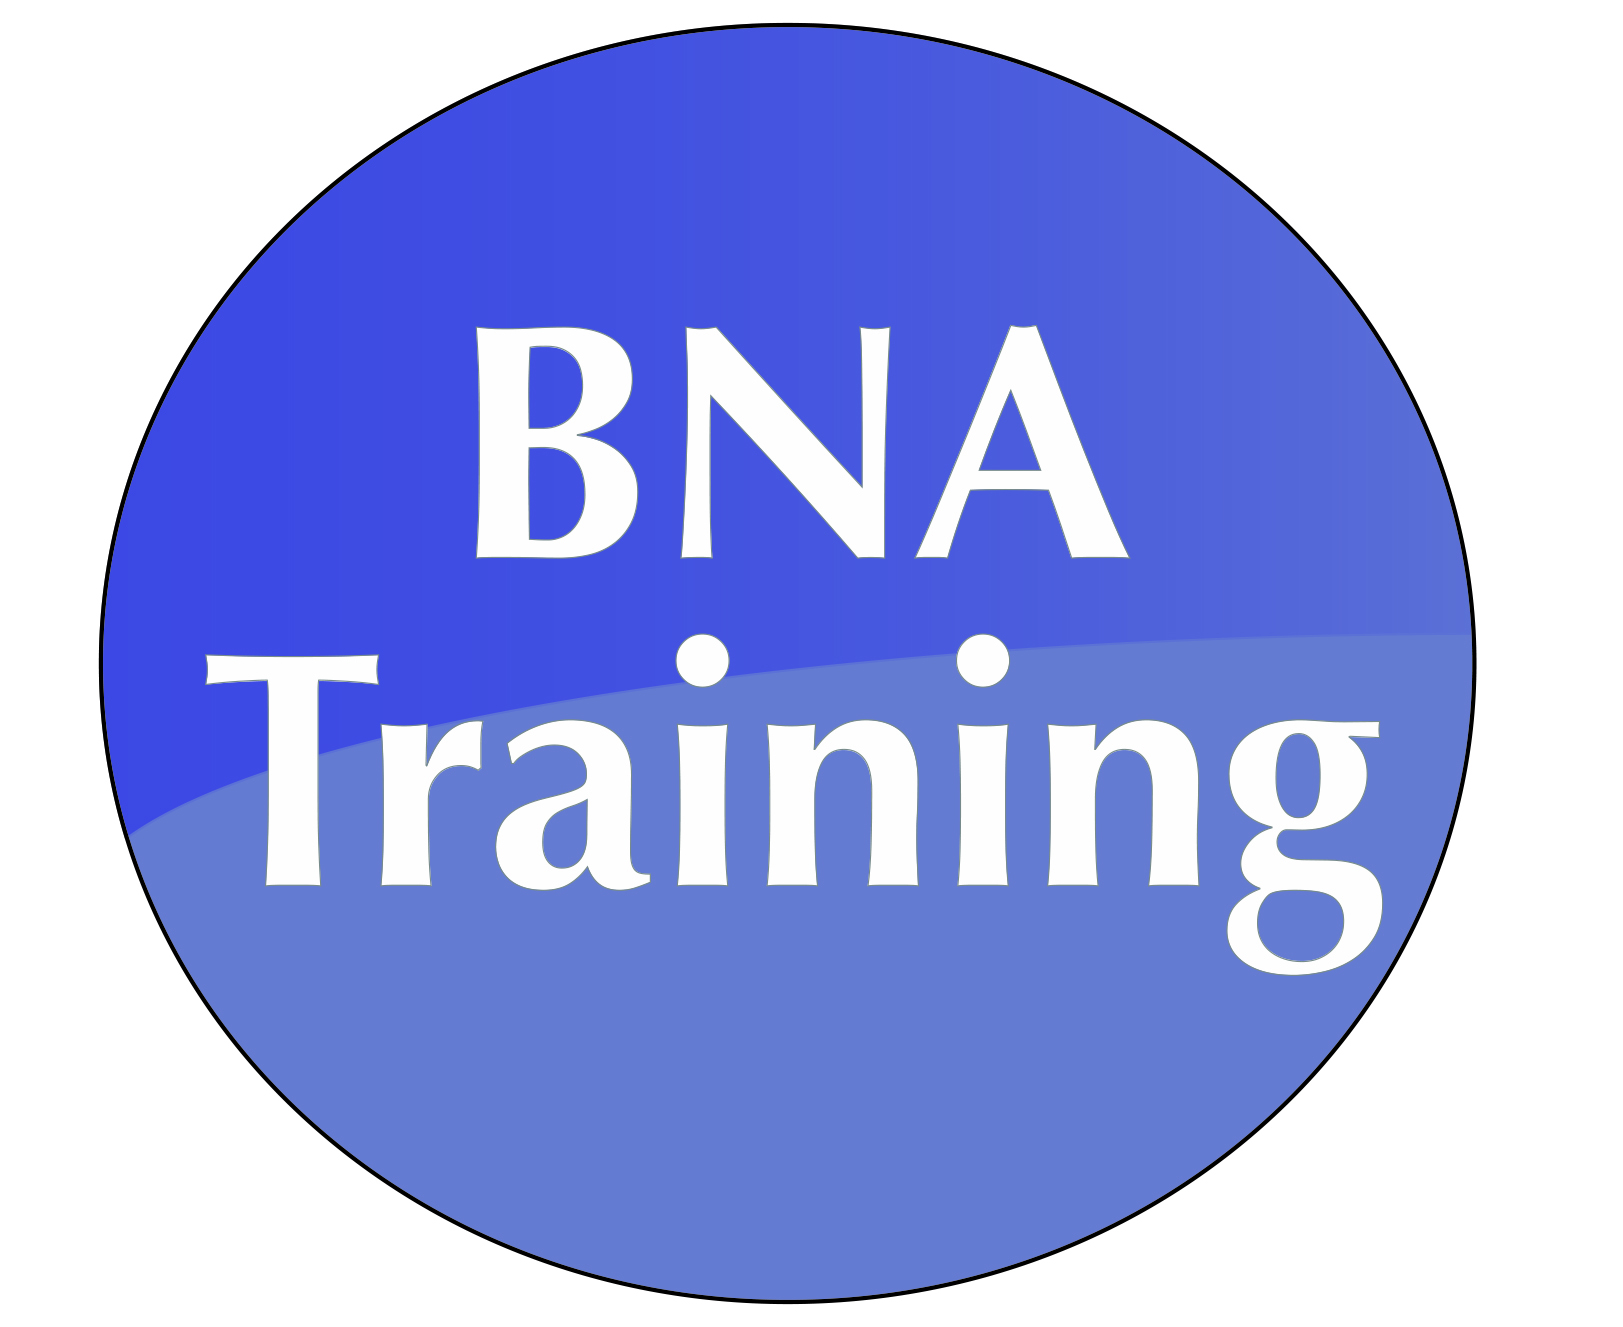 Cna School Chicago Illinois Cna Classes Cna Certification Training